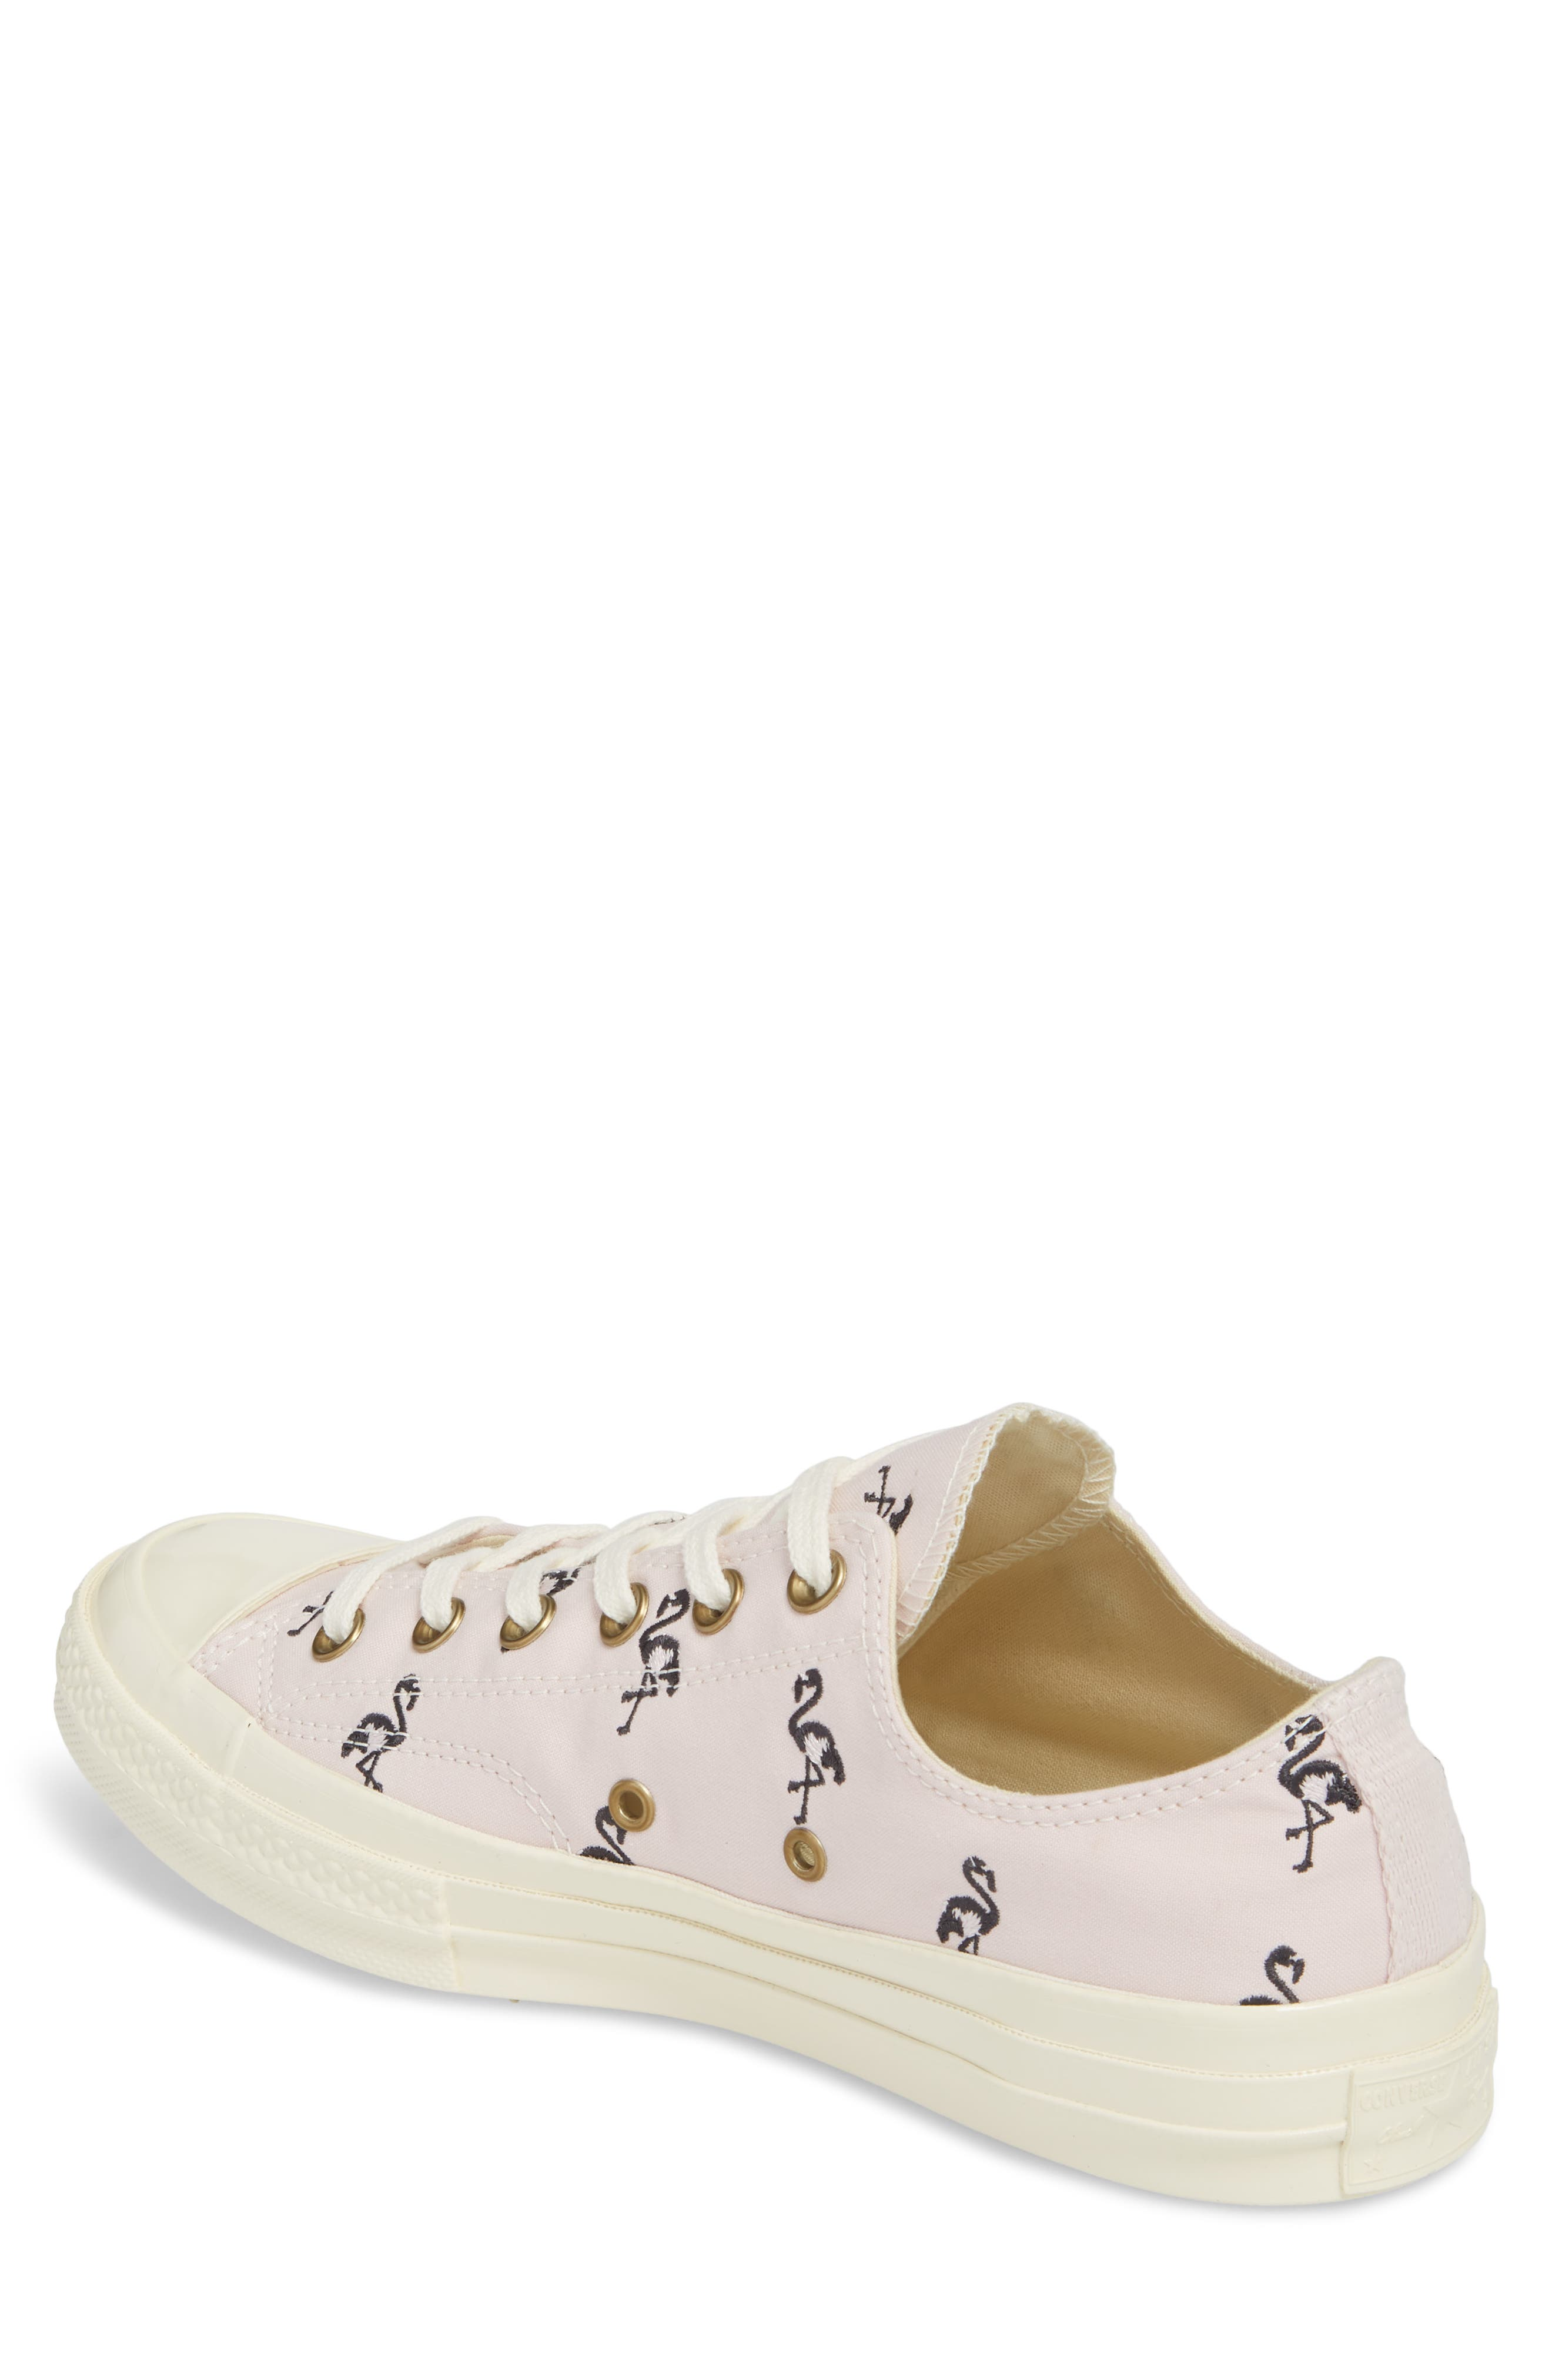 Chuck Taylor<sup>®</sup> All Star<sup>®</sup> 70 Flamingos Low Top Sneaker,                             Alternate thumbnail 2, color,                             Barely Rose